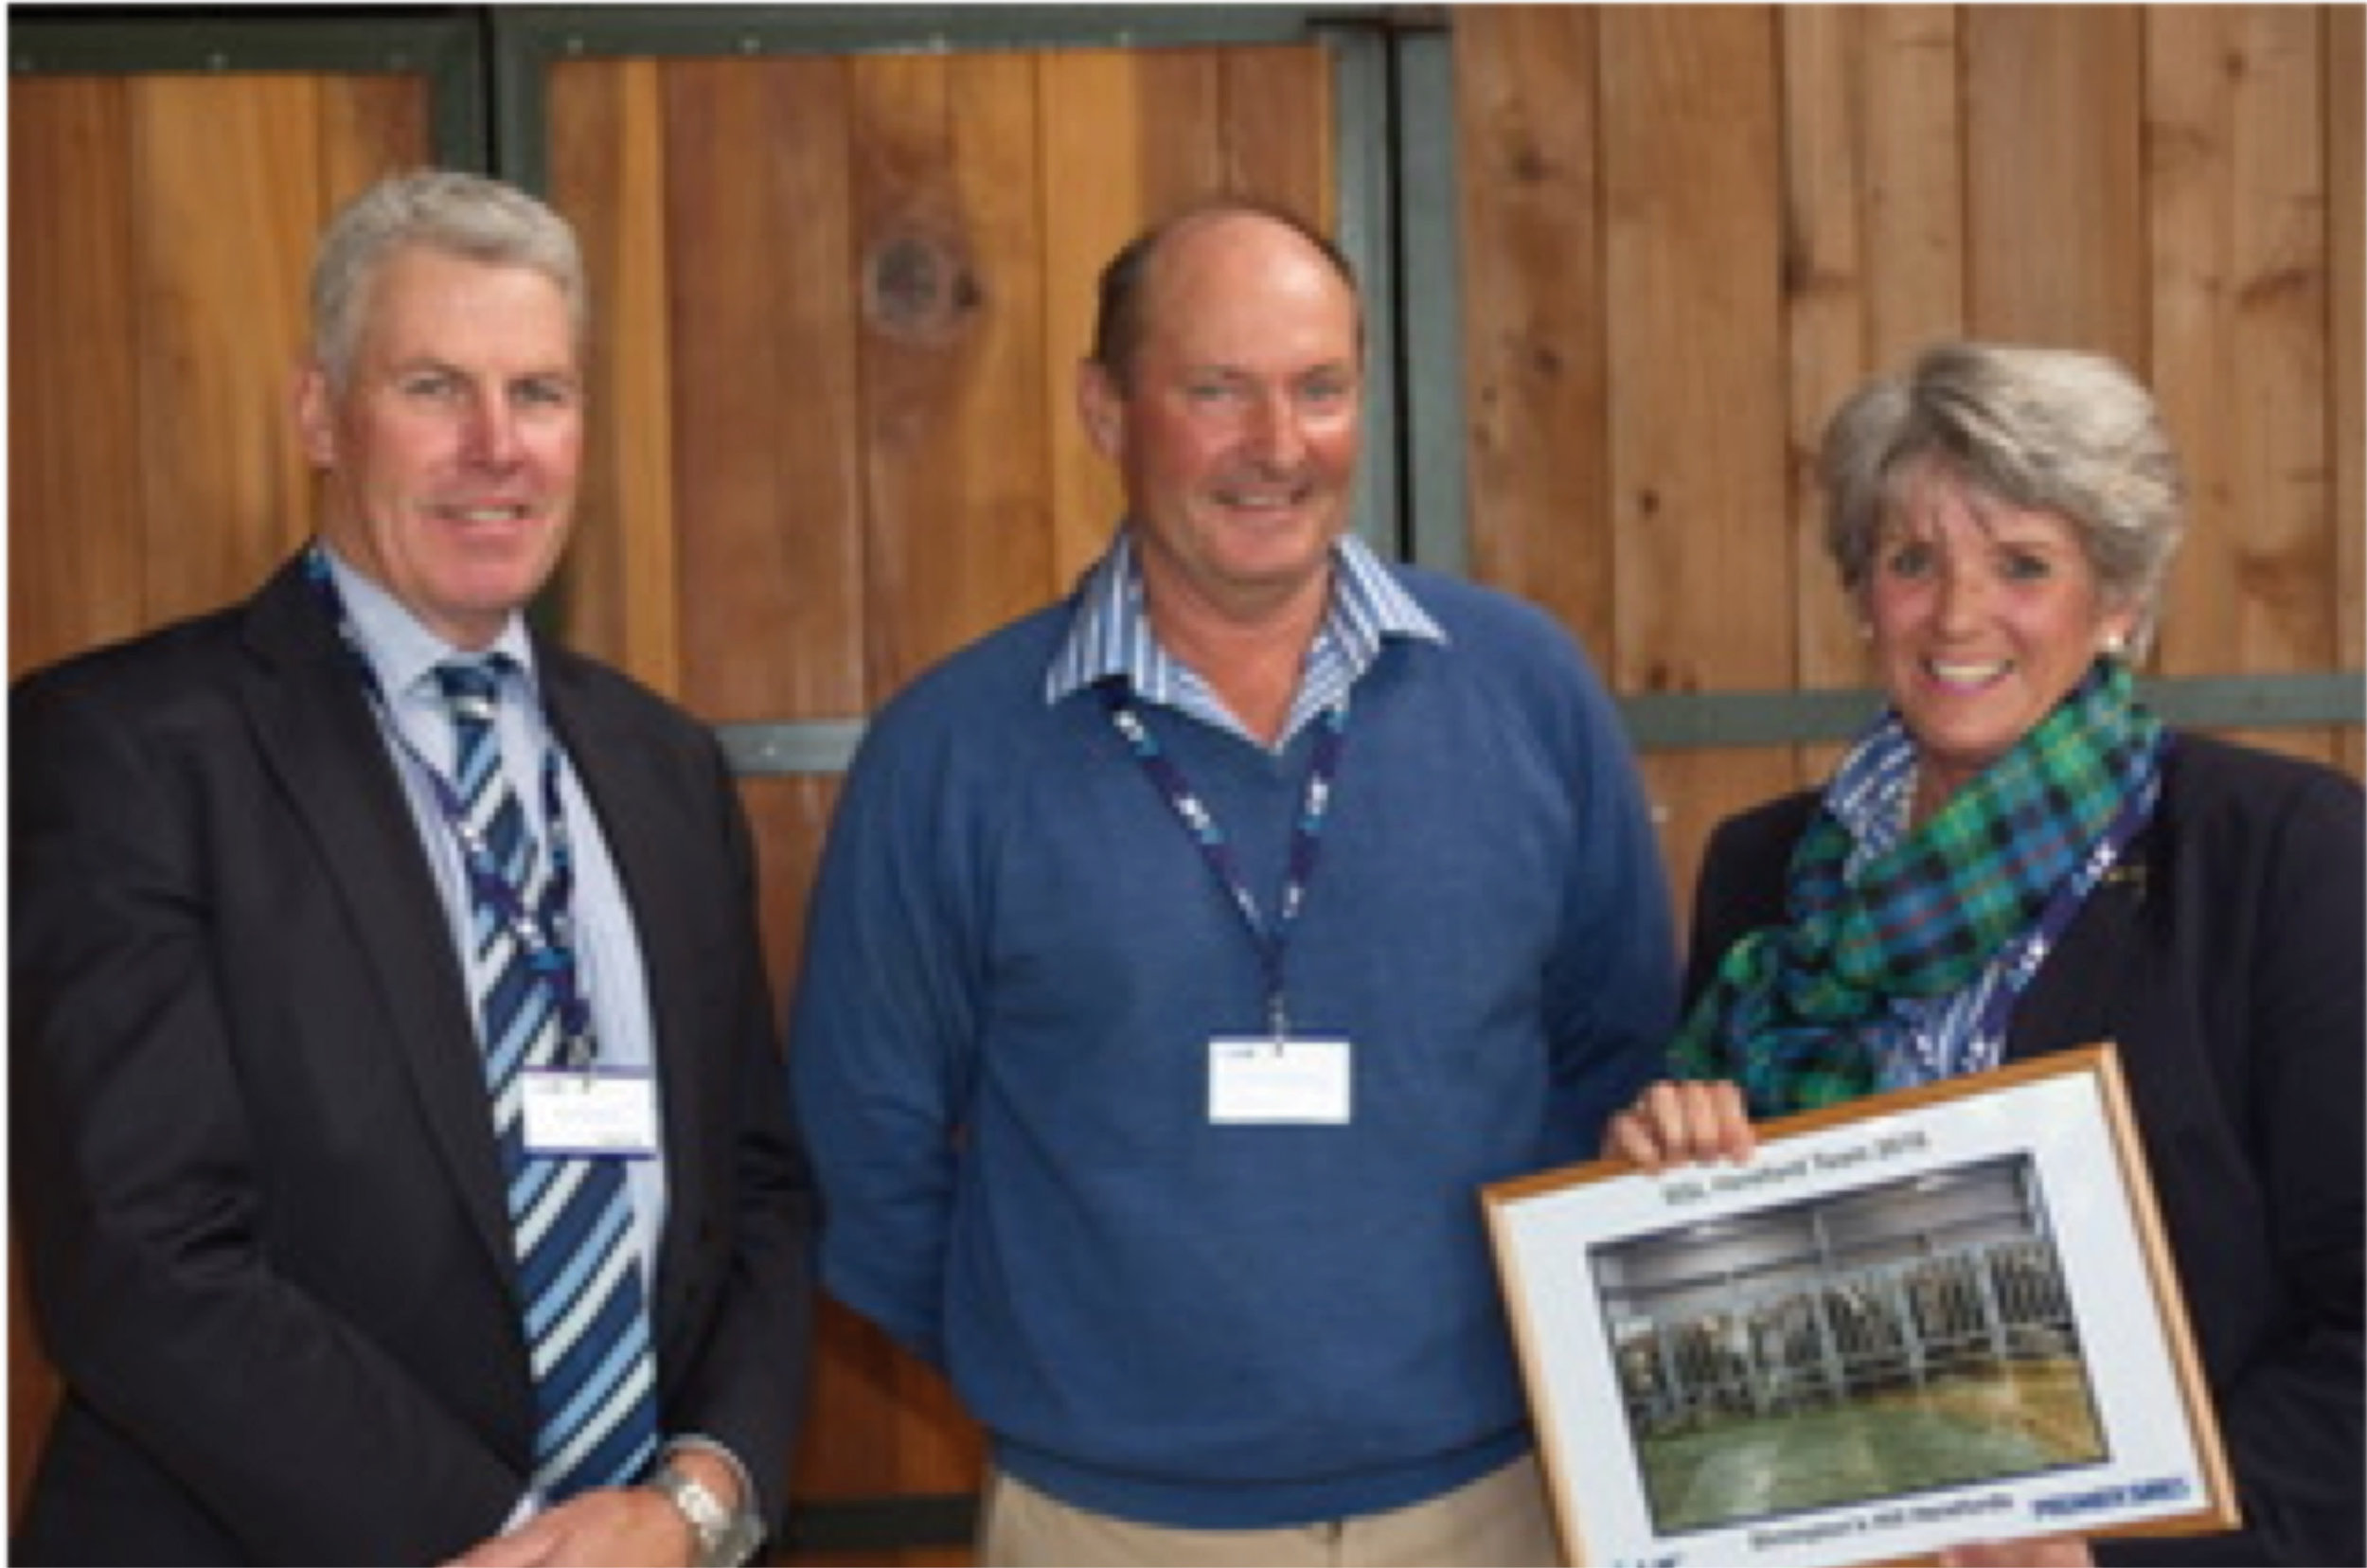 Murray King, LIC Chairman, John McKerchar, Liz McKerchar at LIC's Breeders' Day Presentations in Hamilton